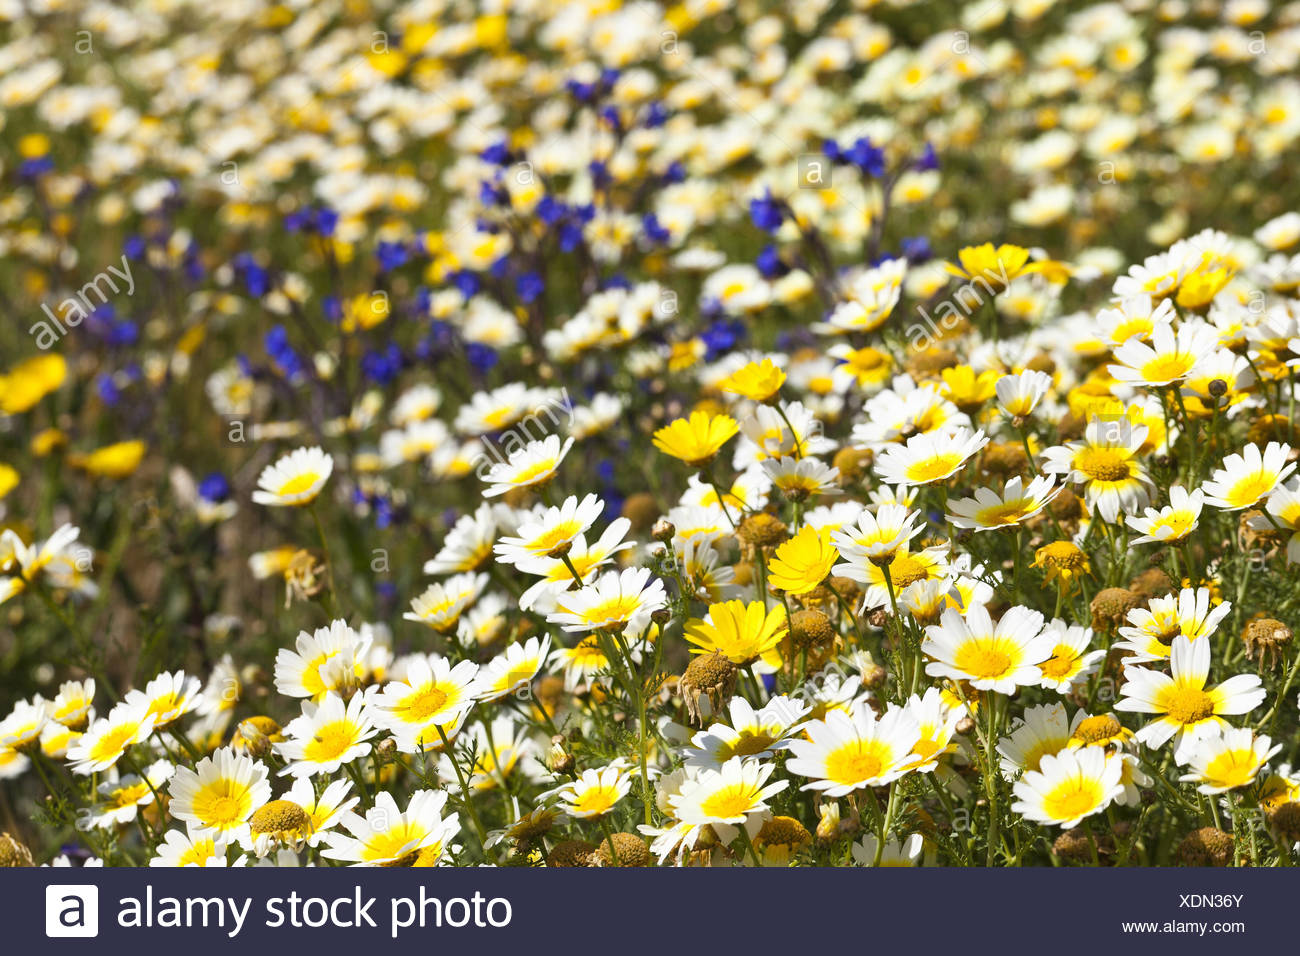 Aggregation of blossoming white-yellow margin rites in a field, - Stock Image